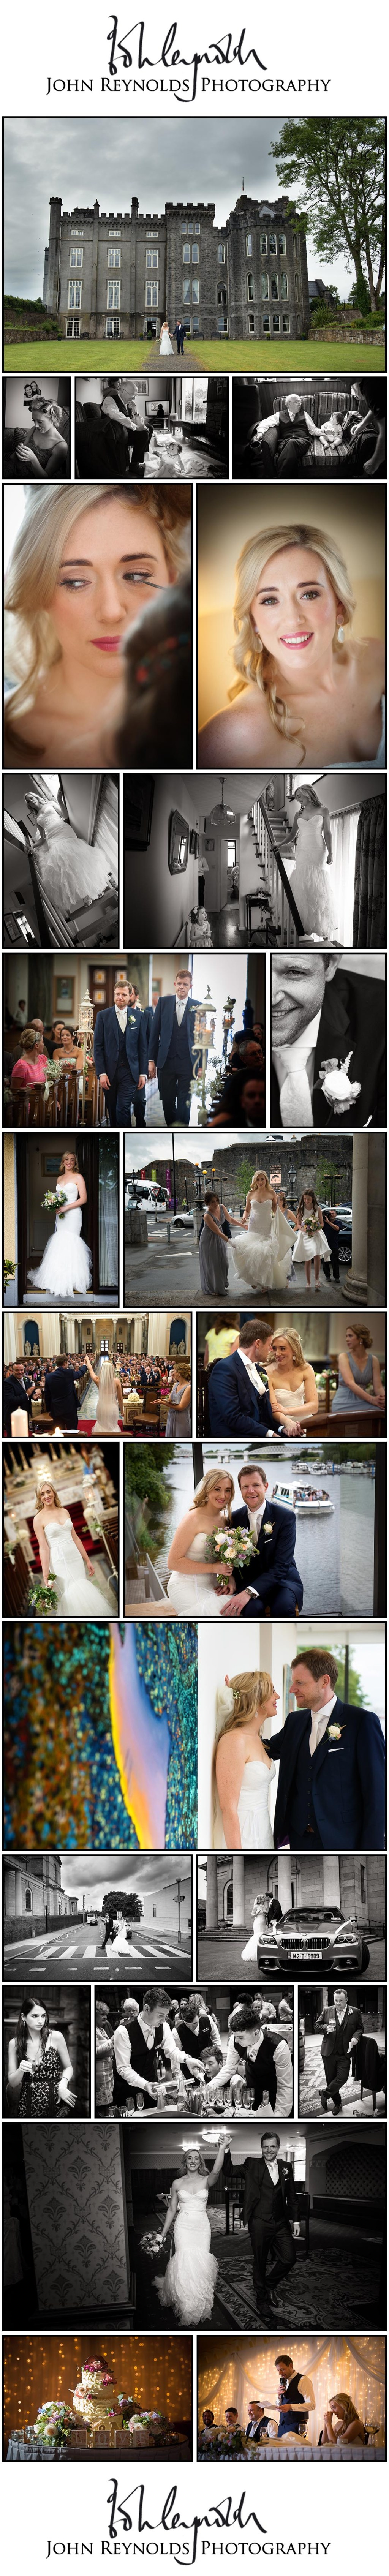 Blog Collage-Dee&Andy